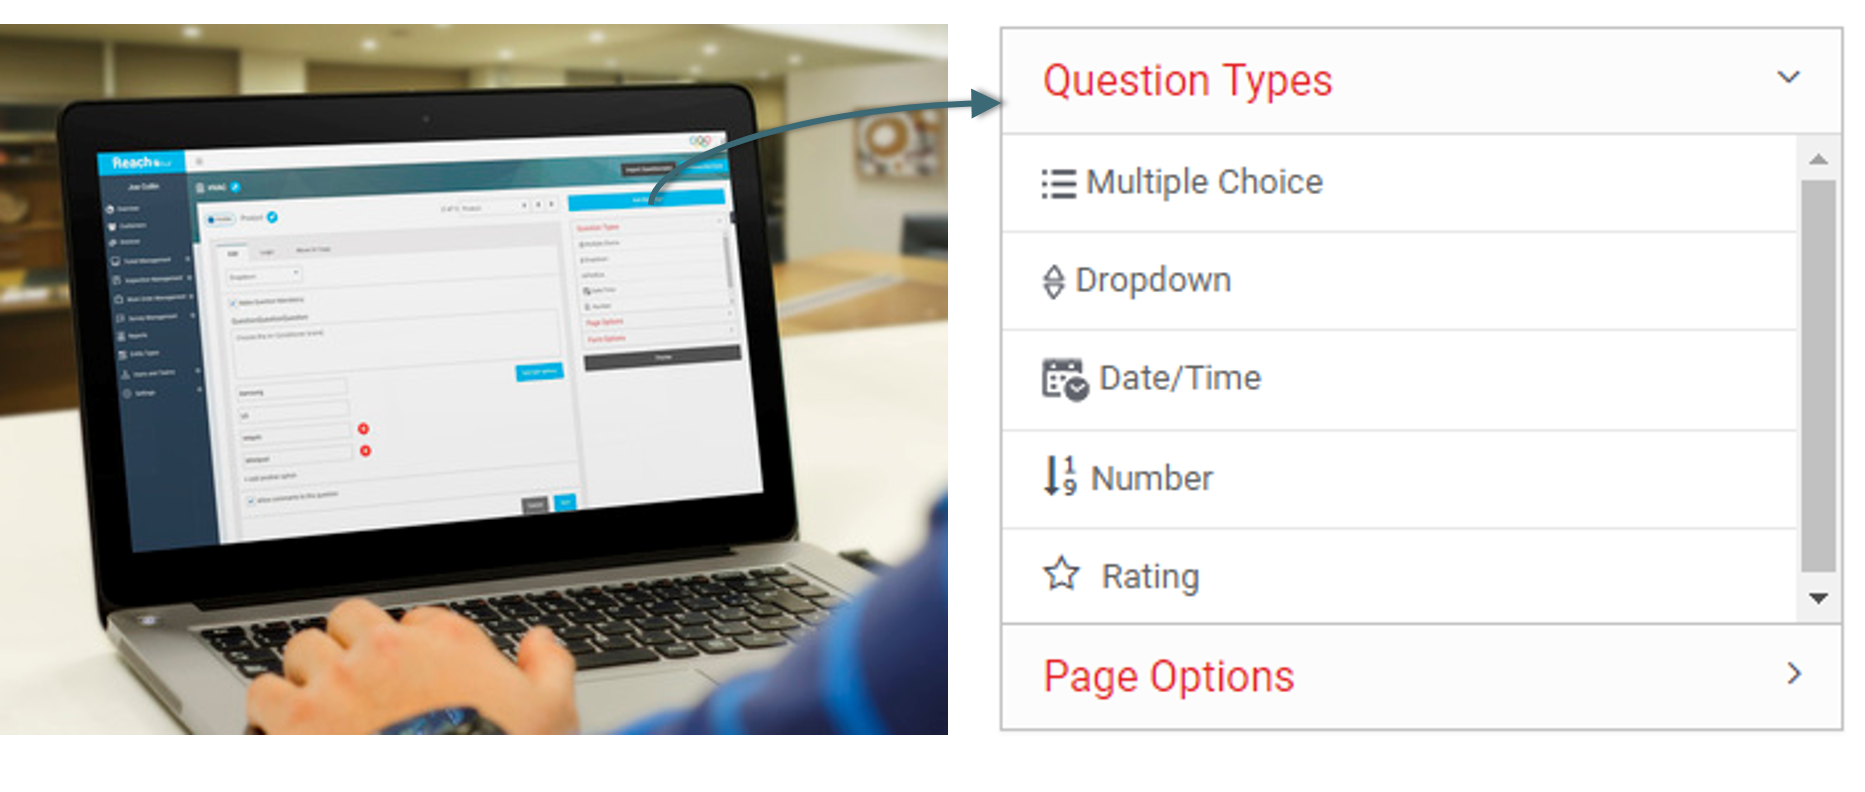 All questions types are available when you build a form